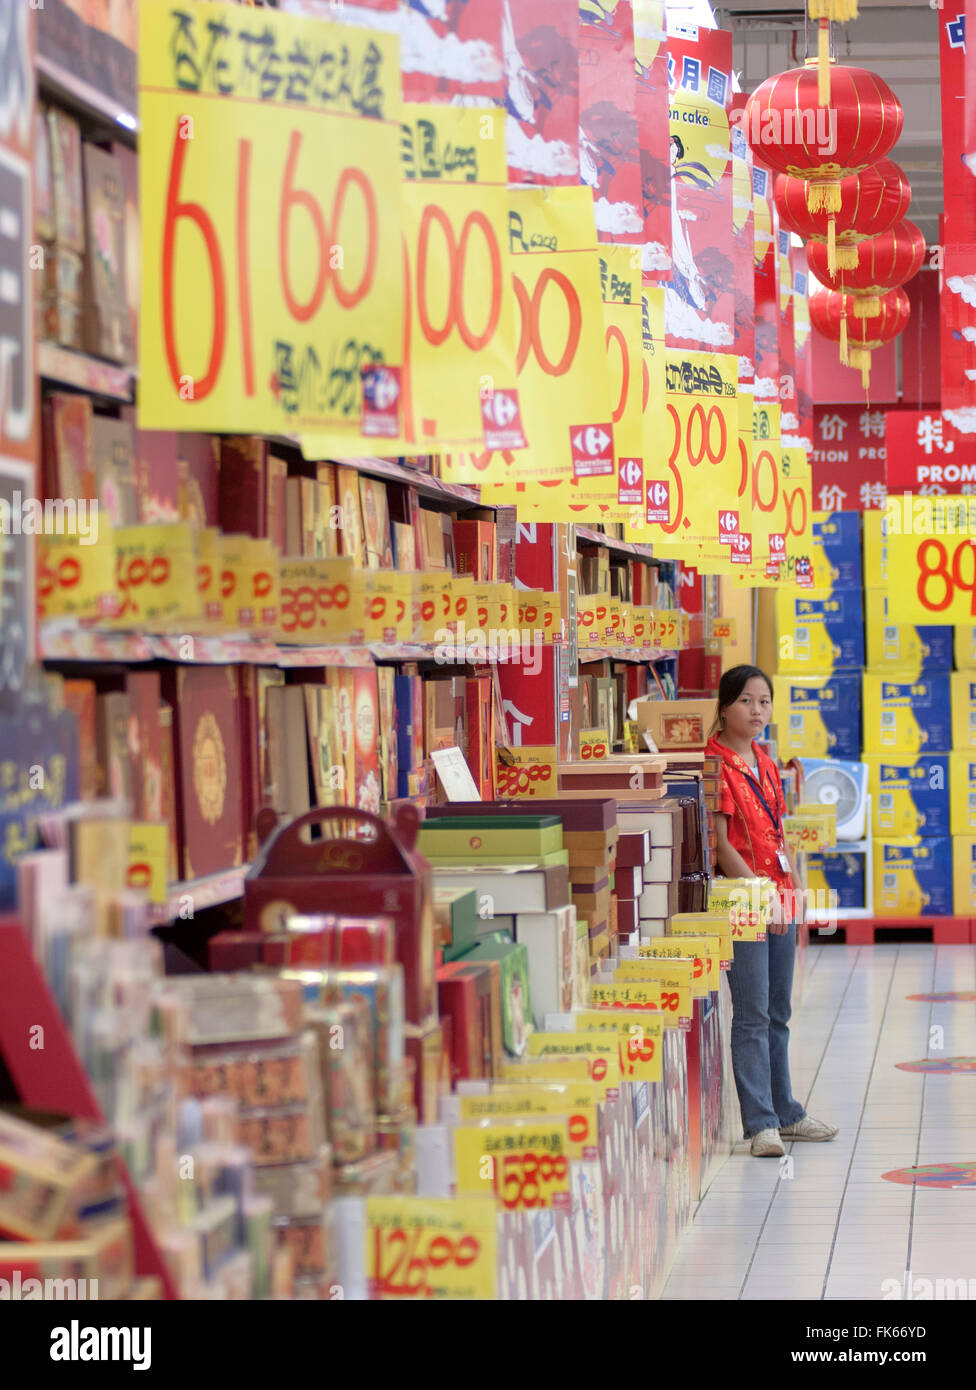 Supermarket worker selling promotions, consumerism in the new China, Shanghai, China, Asia - Stock Image